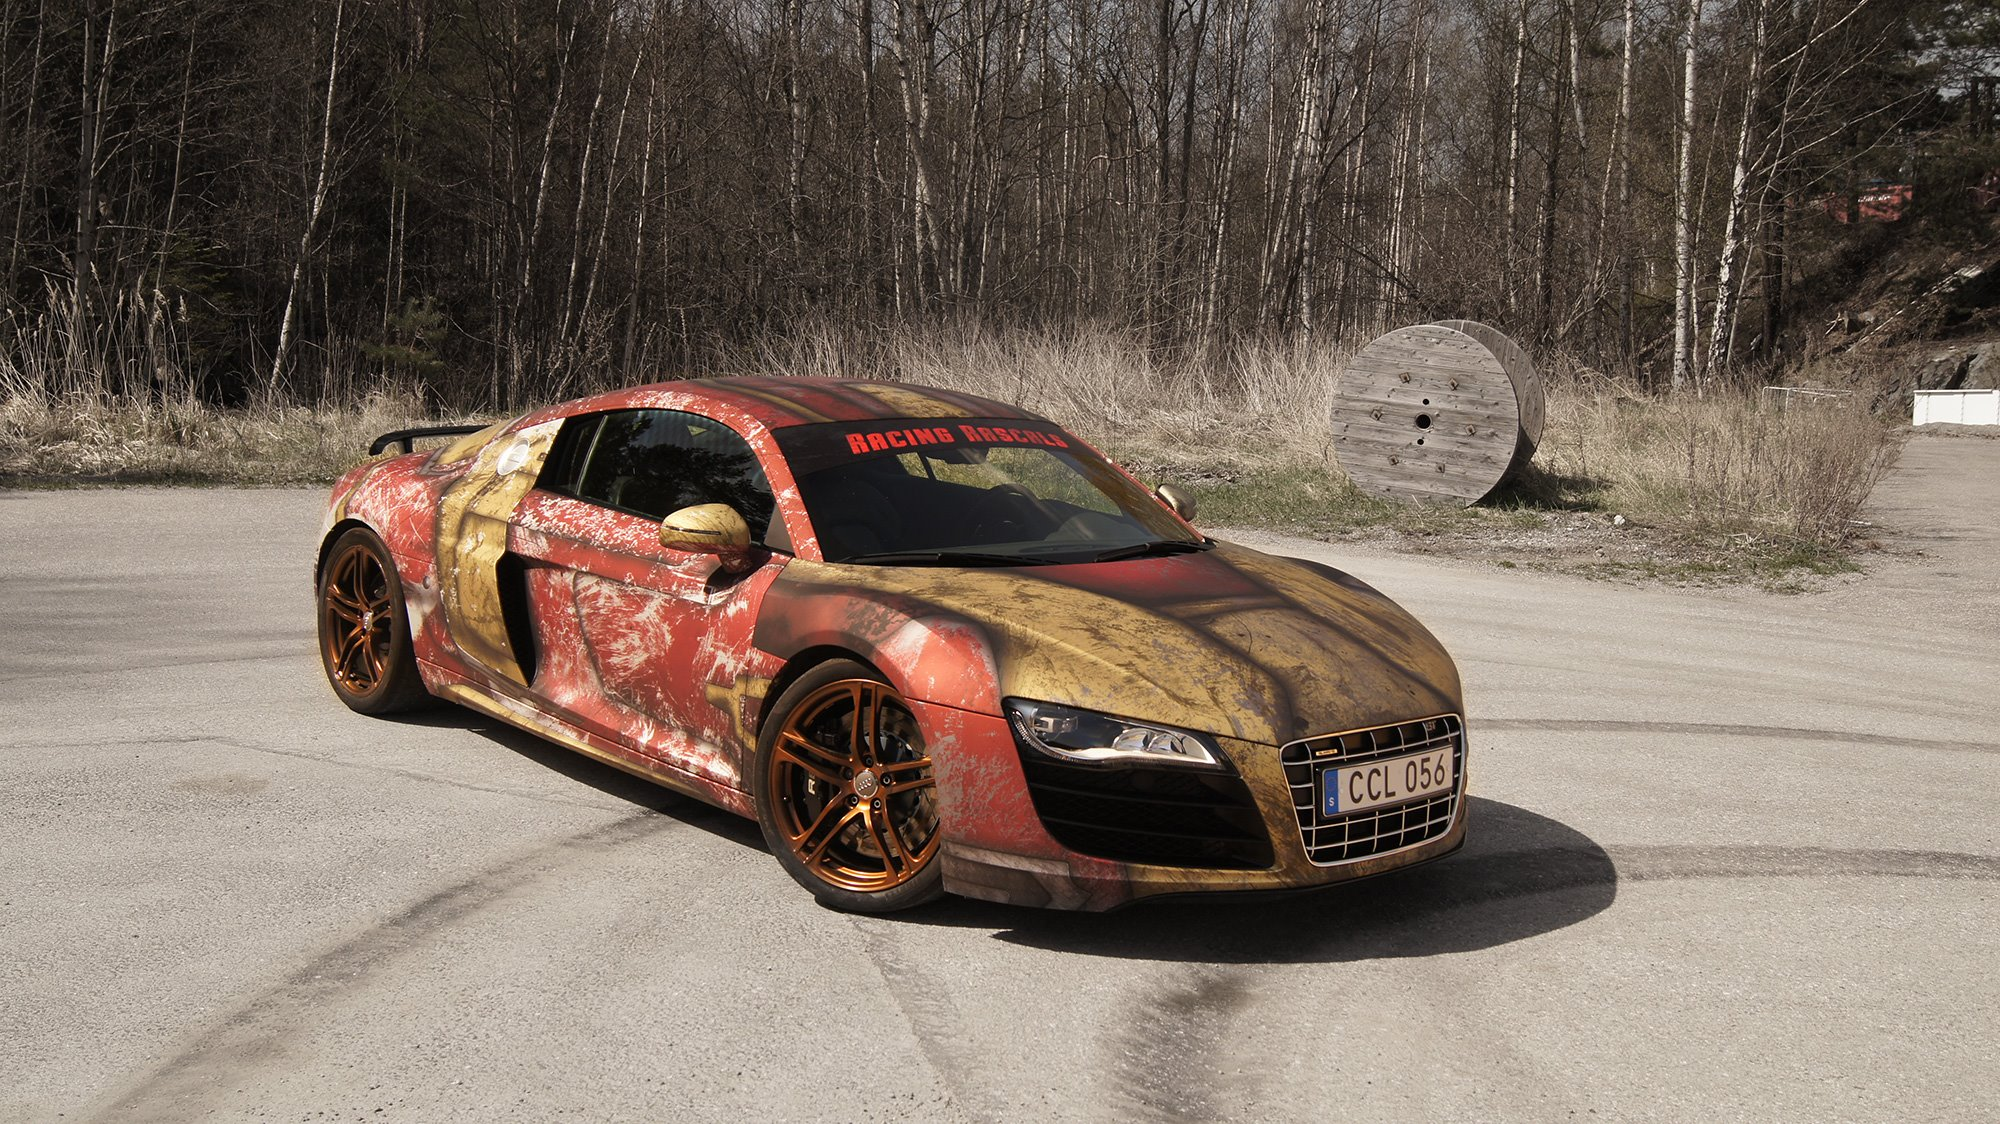 Audi R8 V10 With Rust Themed Iron Man Wrap By Skepple